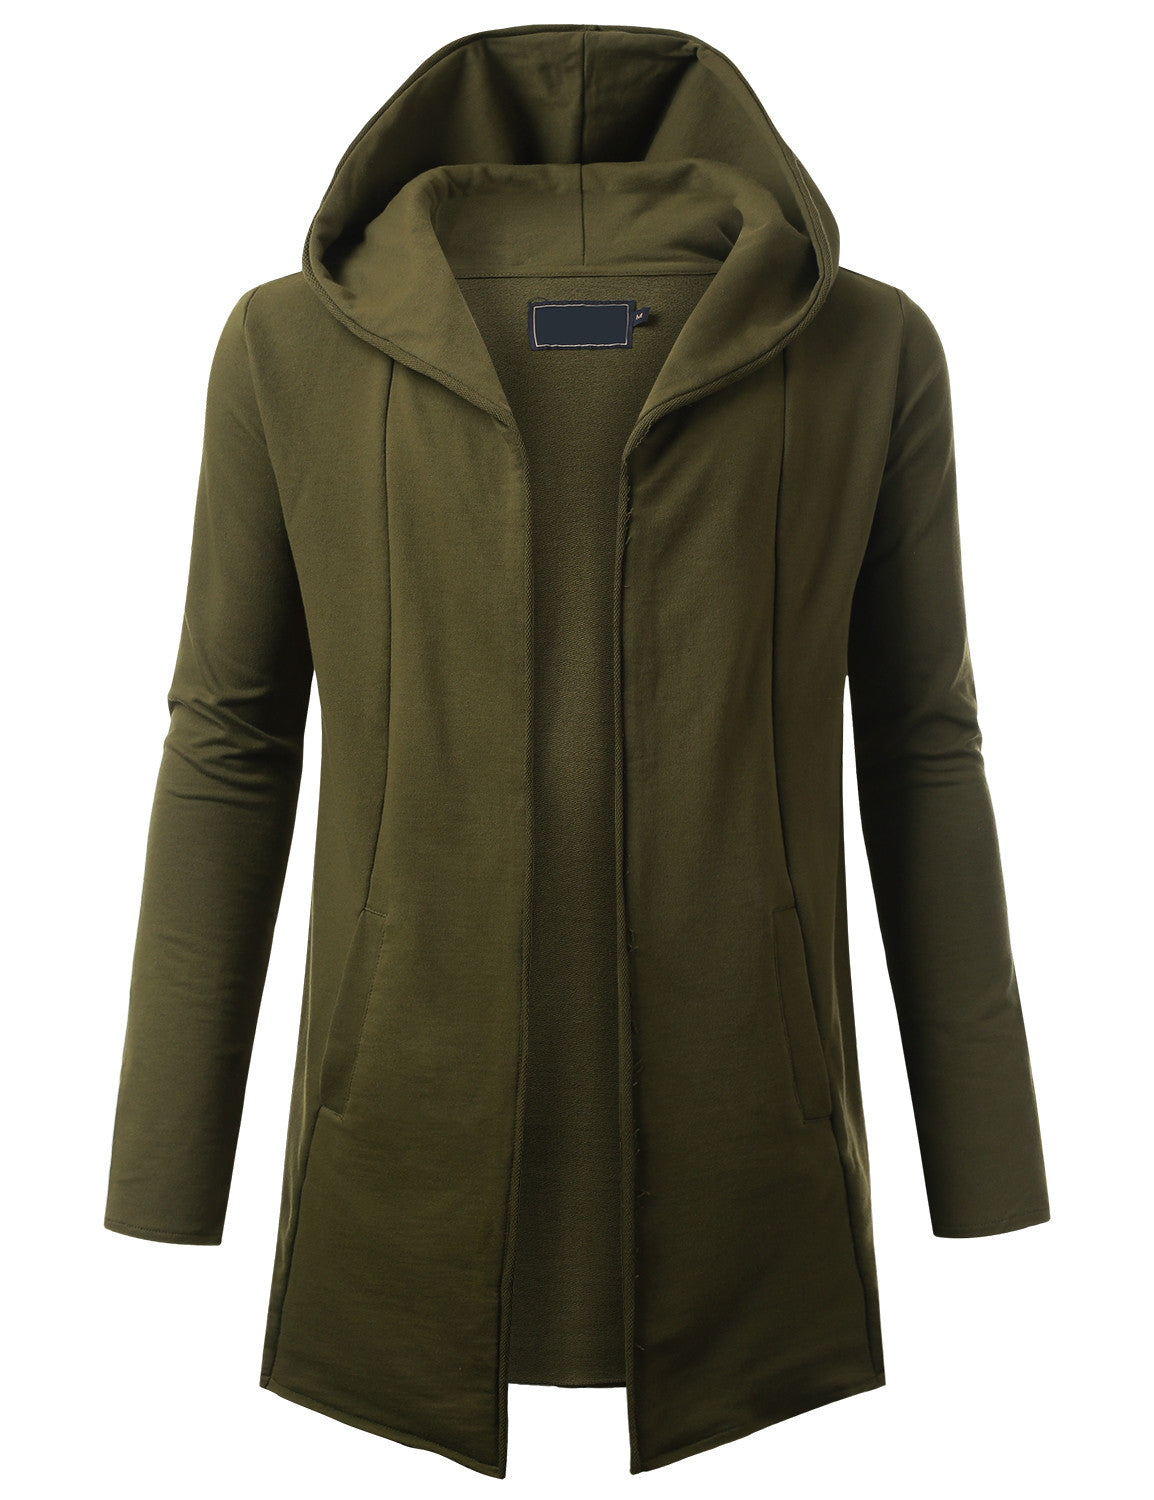 OLIVE French Terry Hooded Cardigan Cape - URBANCREWS